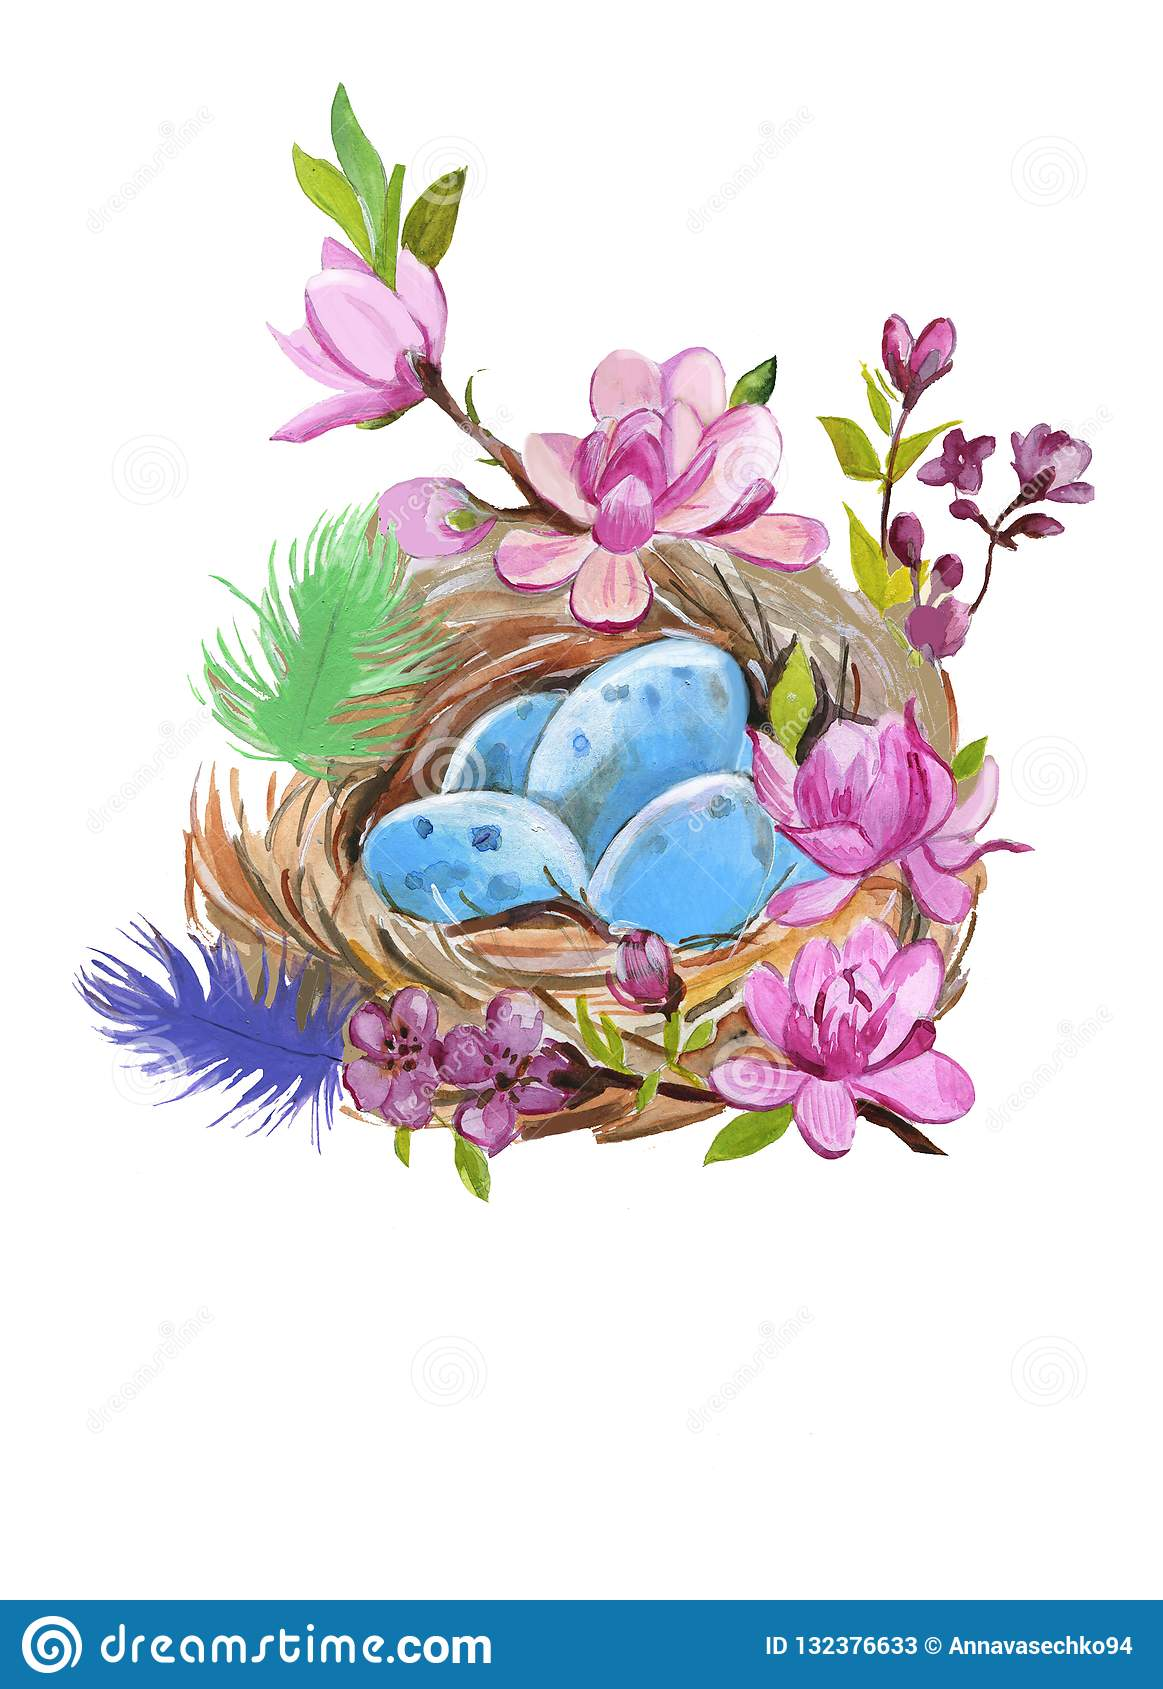 Hand painted watercolor thrush`s nest with eggs on white. Aquarelle nature illustration.